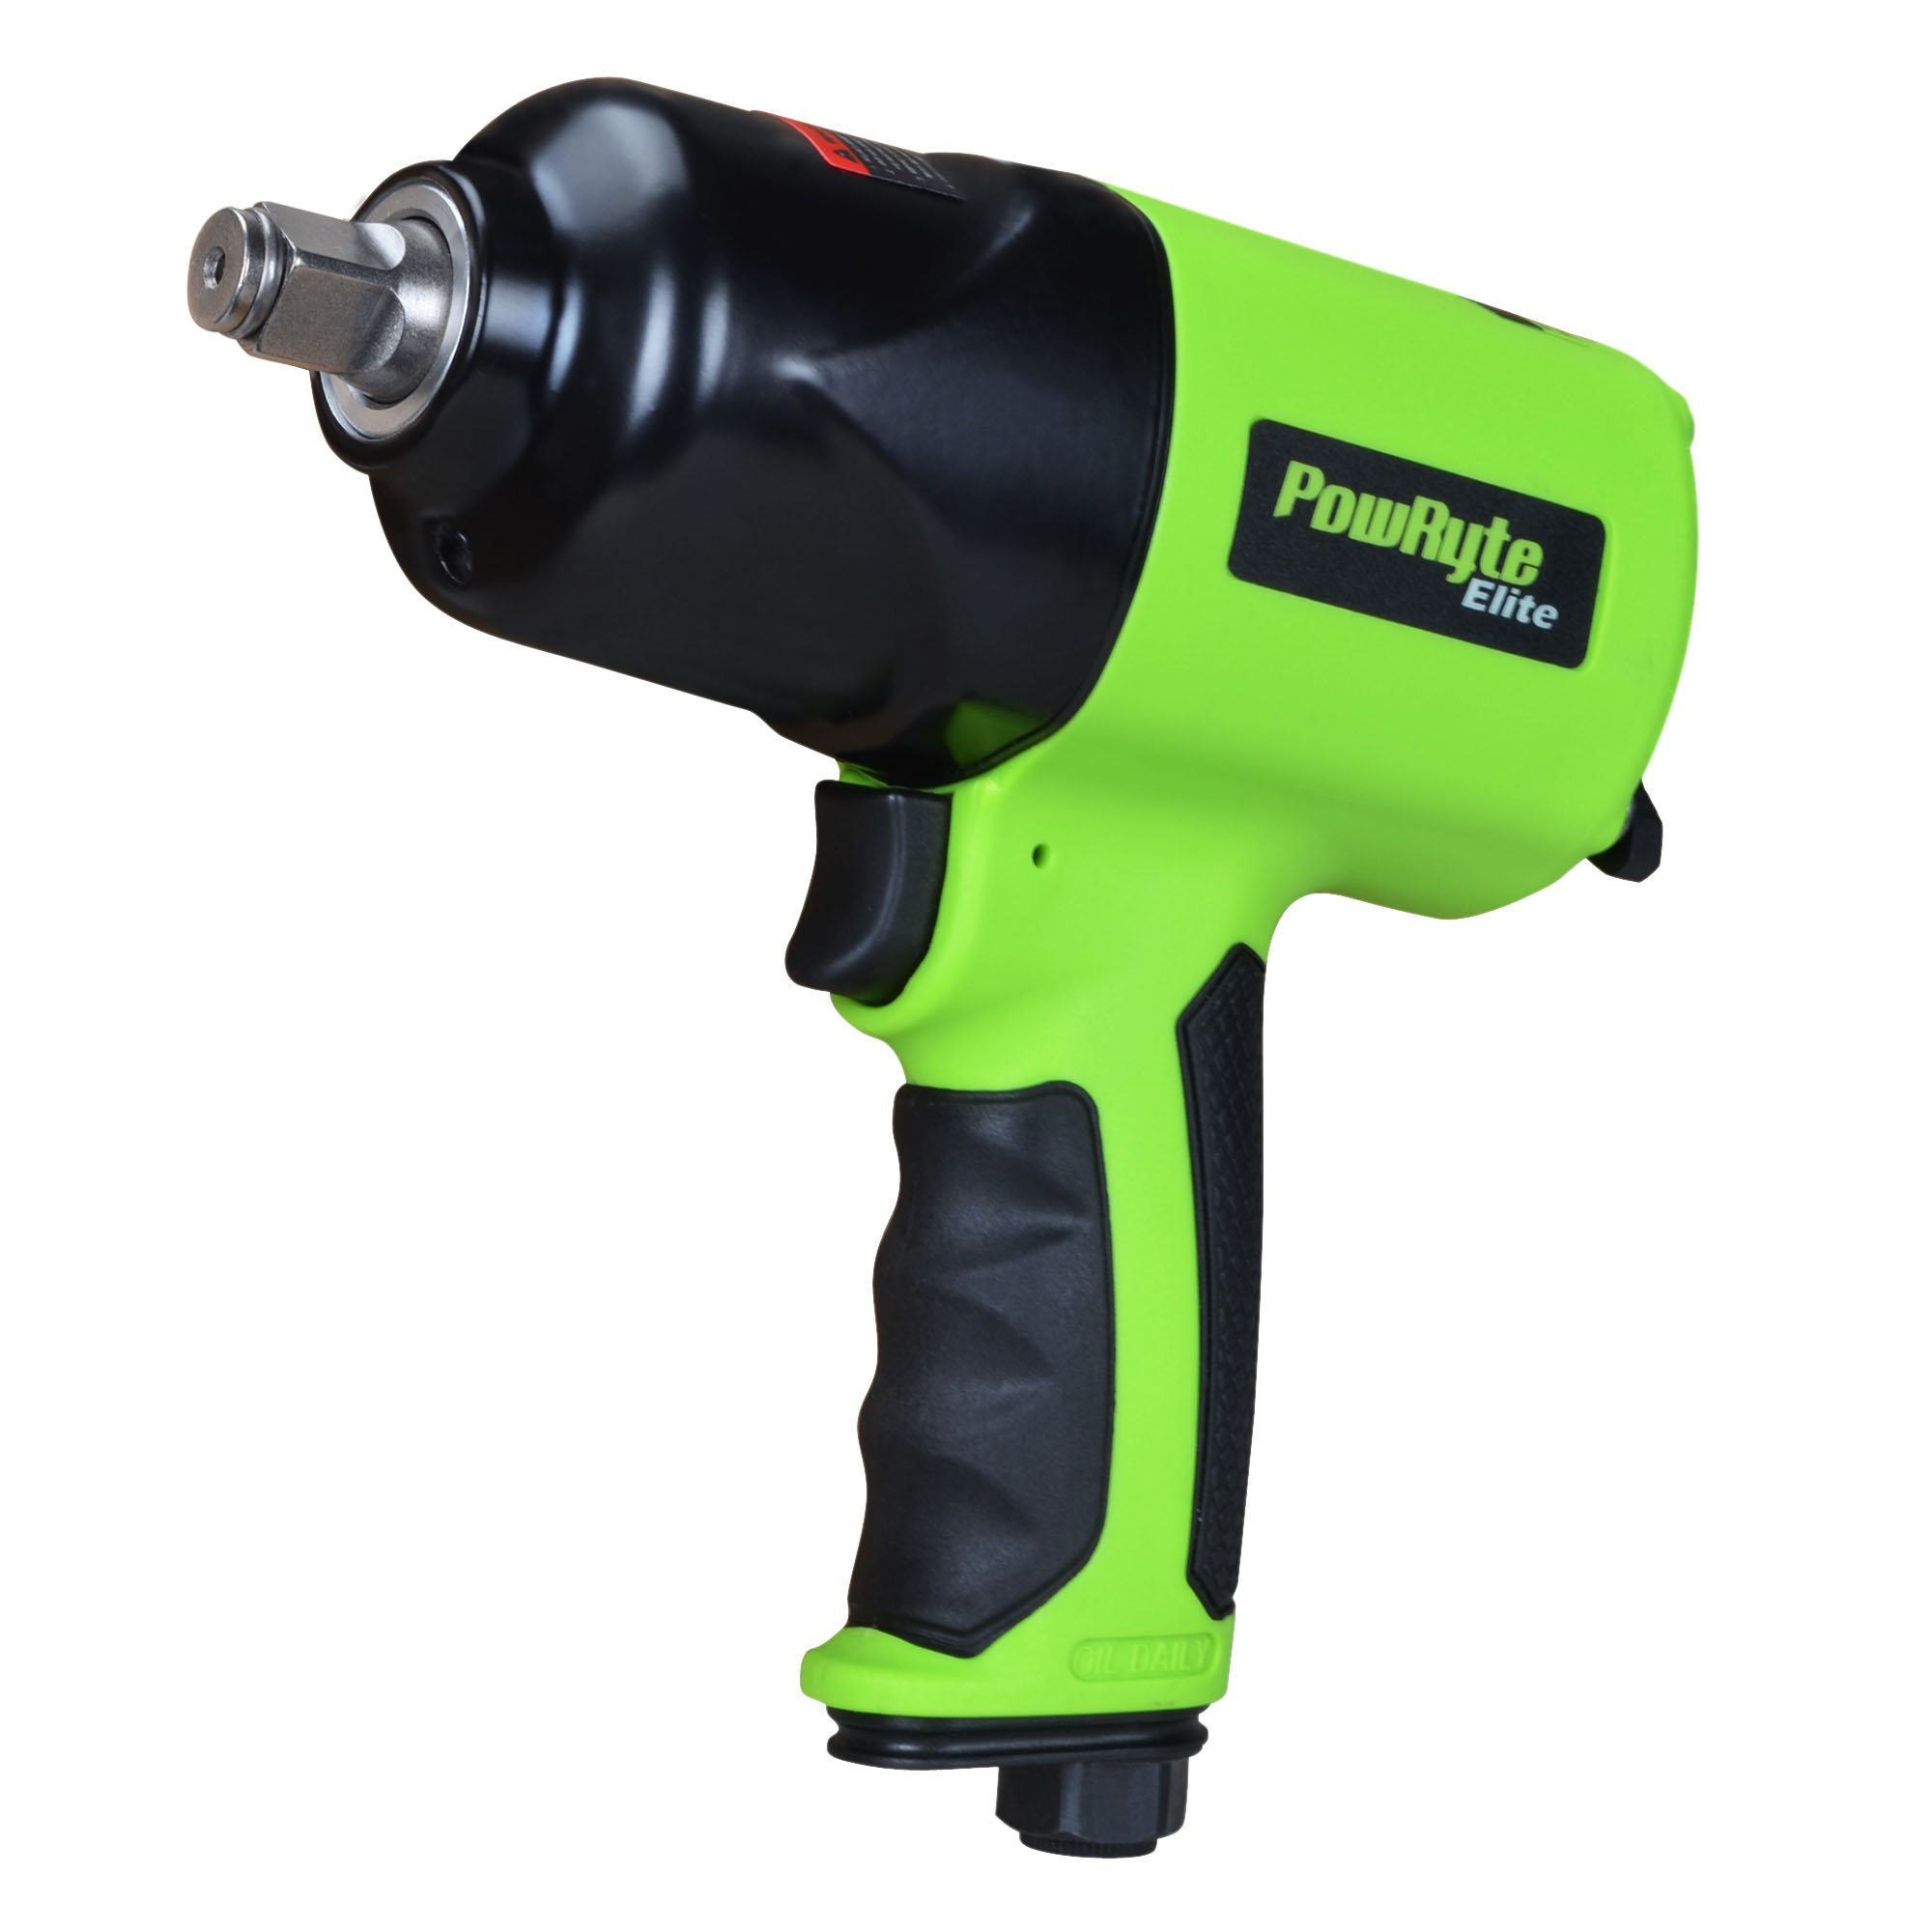 PowRyte Elite 1/2-Inch Air Impact Wrench, 800 ft-lbs, Twin Hammer